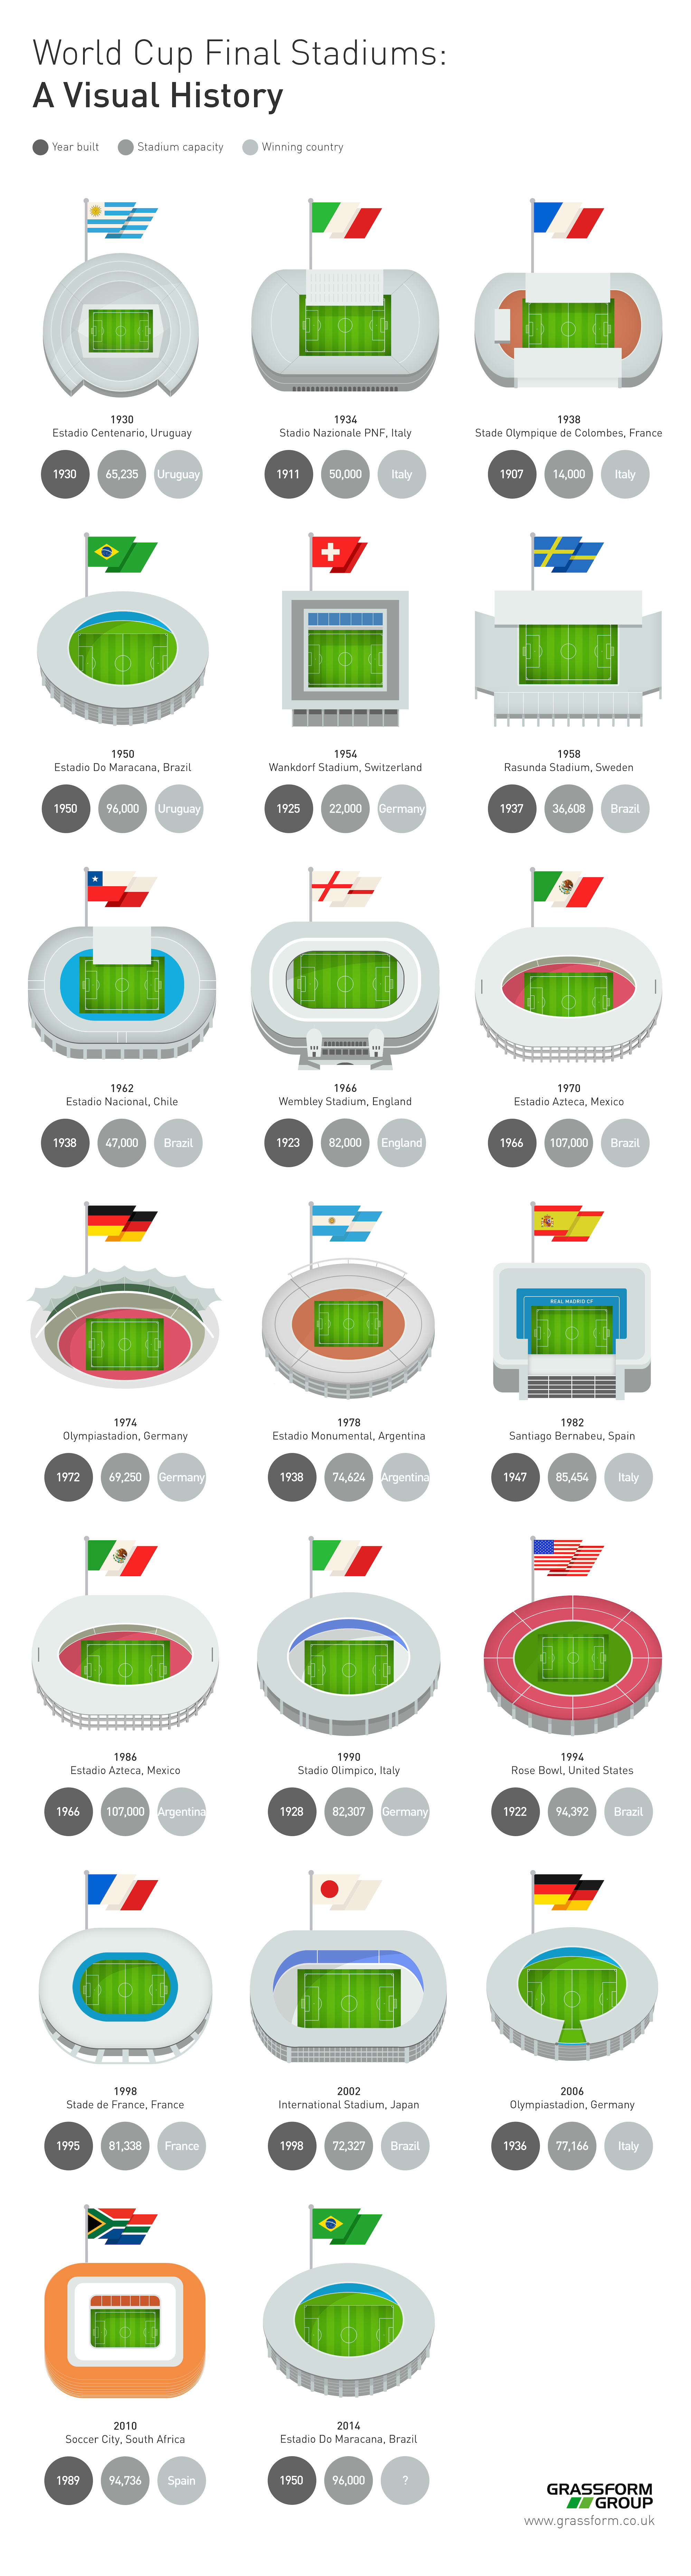 World-Cup-Final-Stadiums-Visual-History